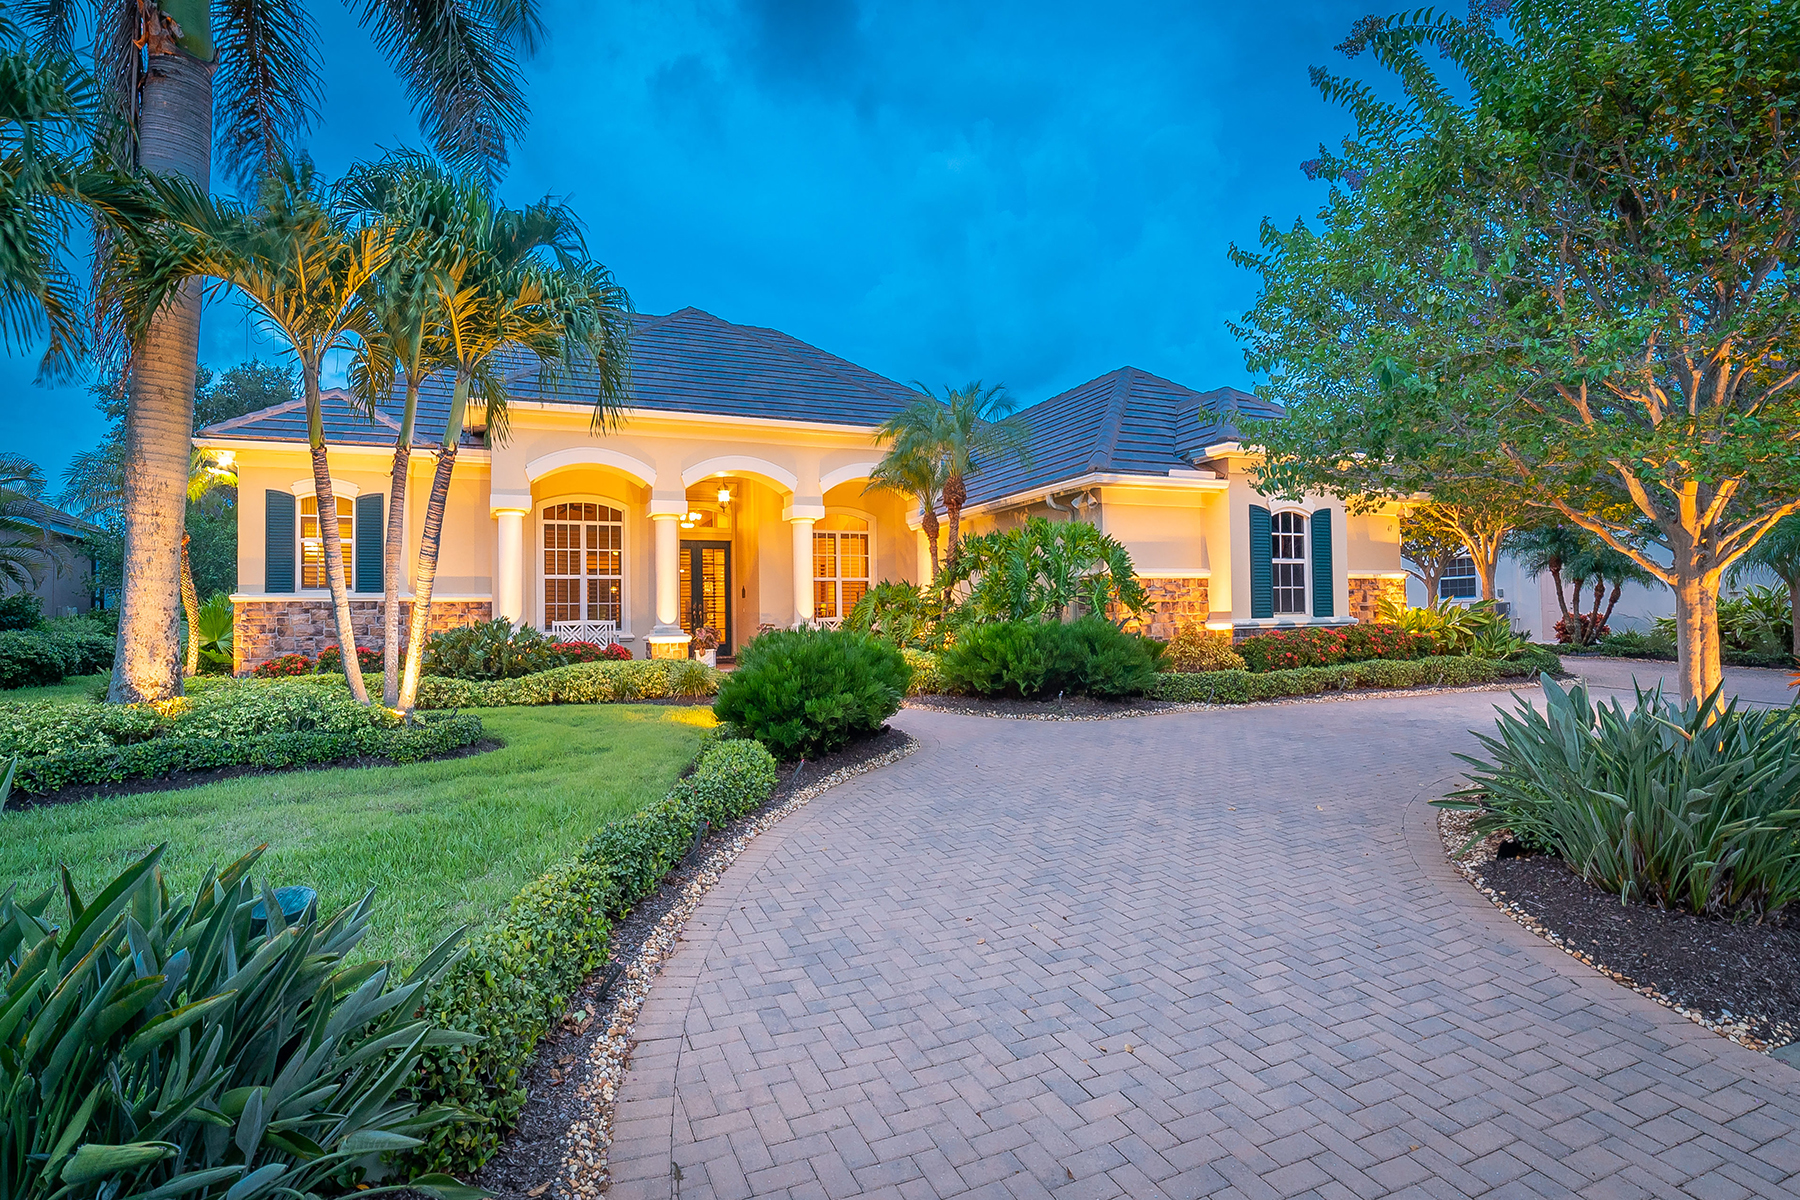 Single Family Homes for Sale at BOCA ROYALE 47 Grande Fairway, Englewood, Florida 34223 United States